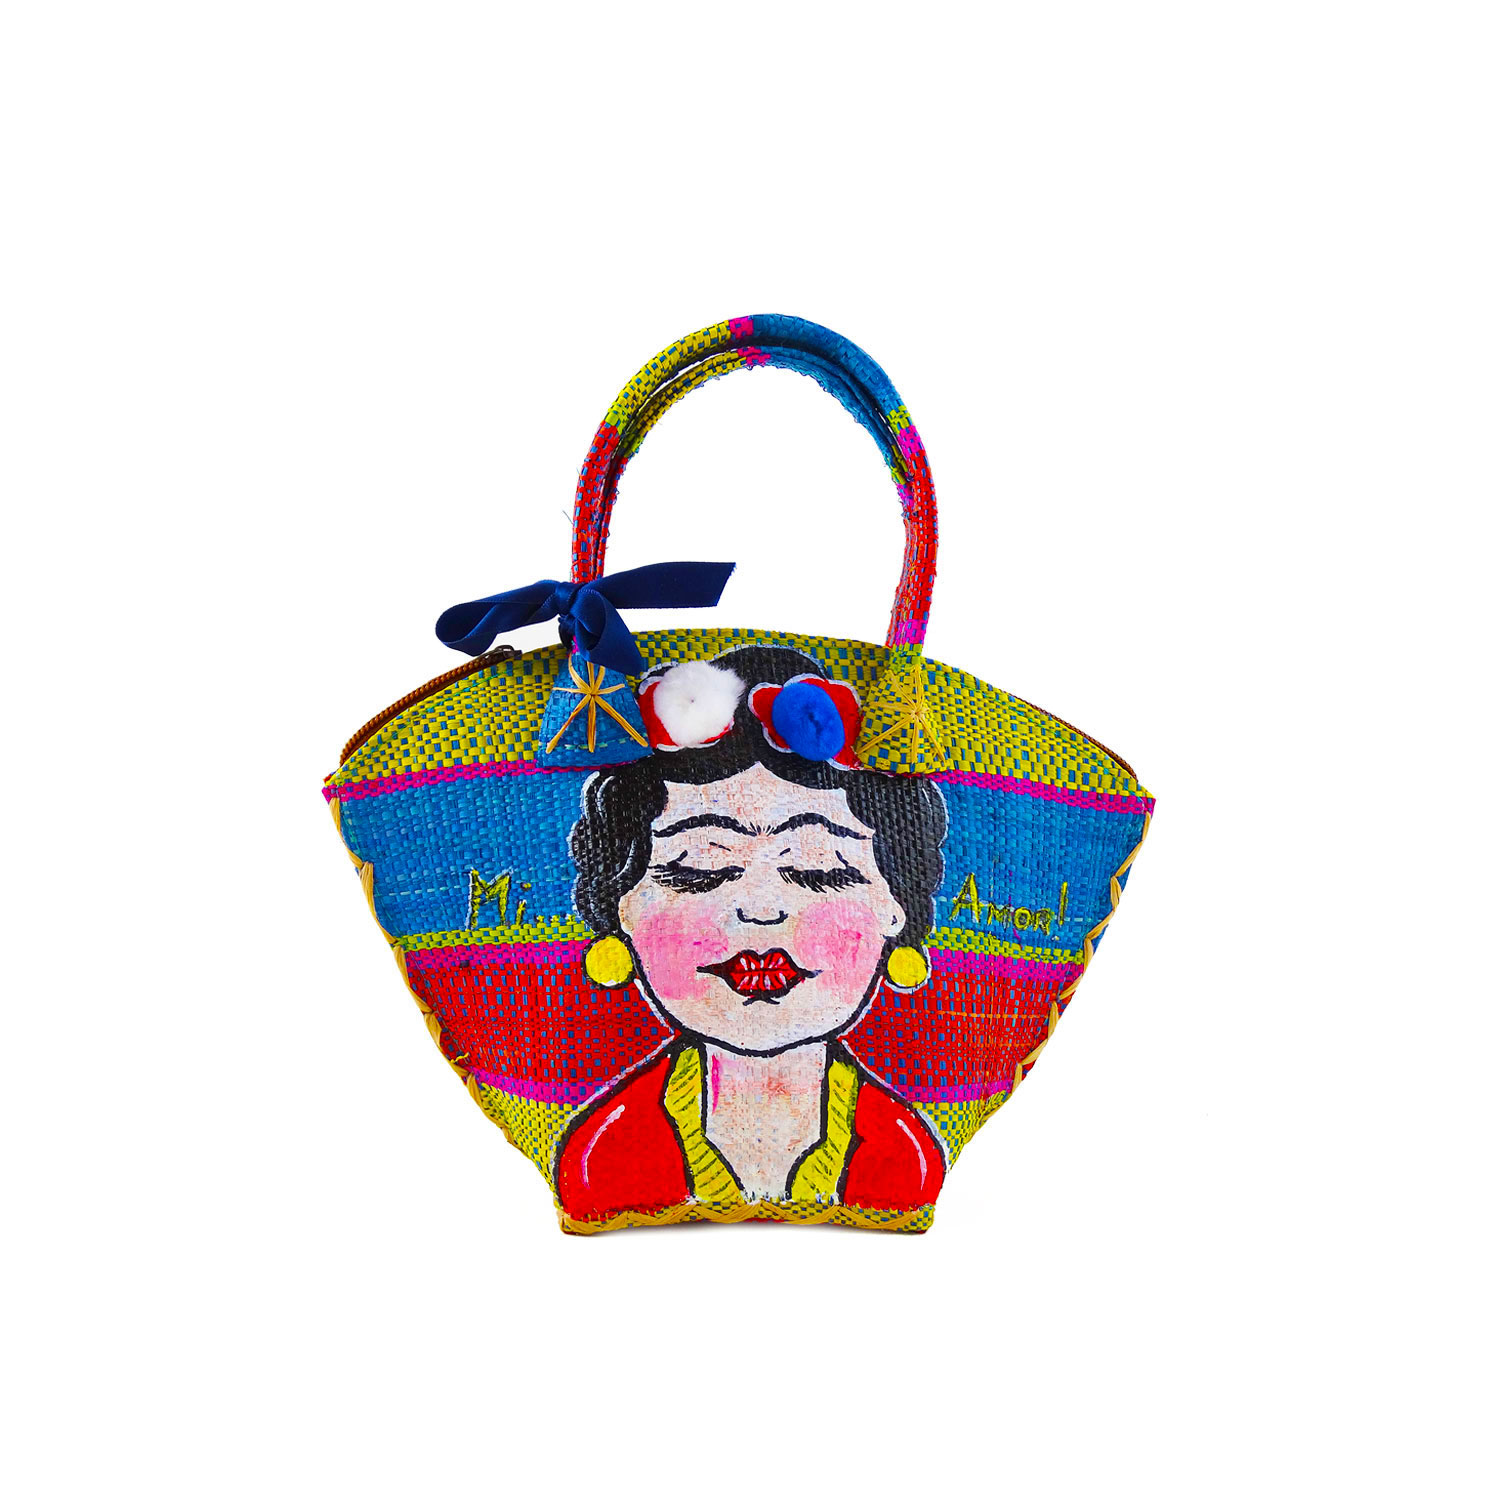 Hand-painted handbag - I Love Frida